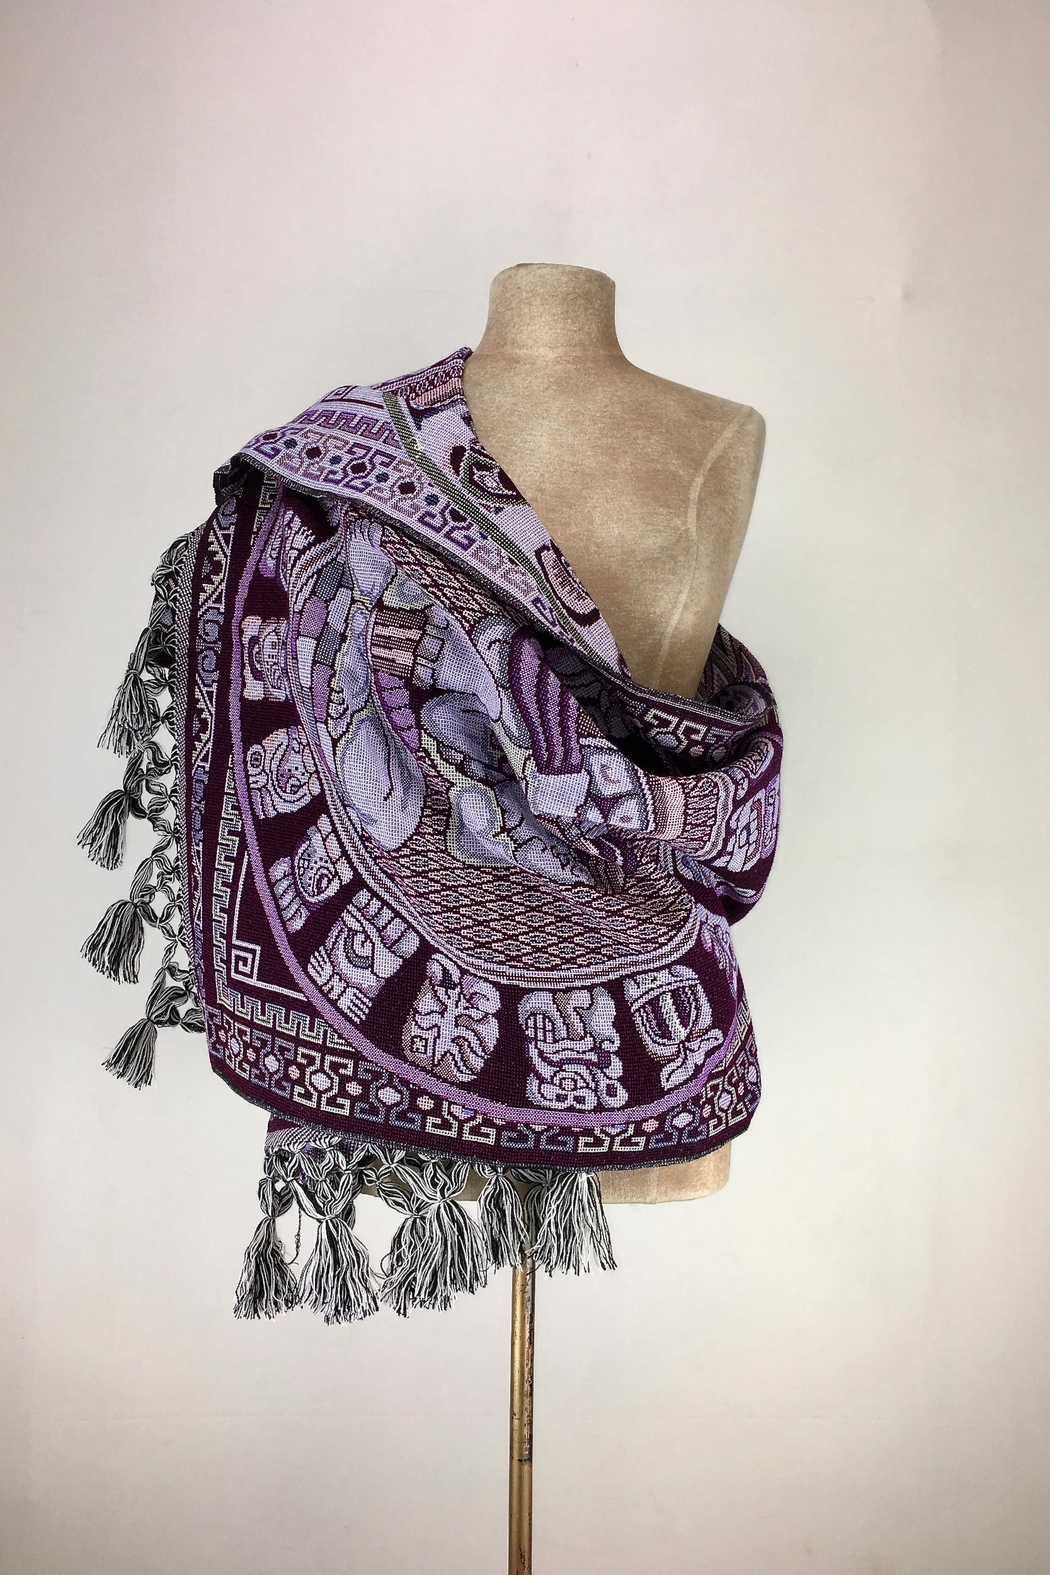 Unbranded Mayan-Calendar Woven-Textile Handcrafted-Rebozo - Main Image